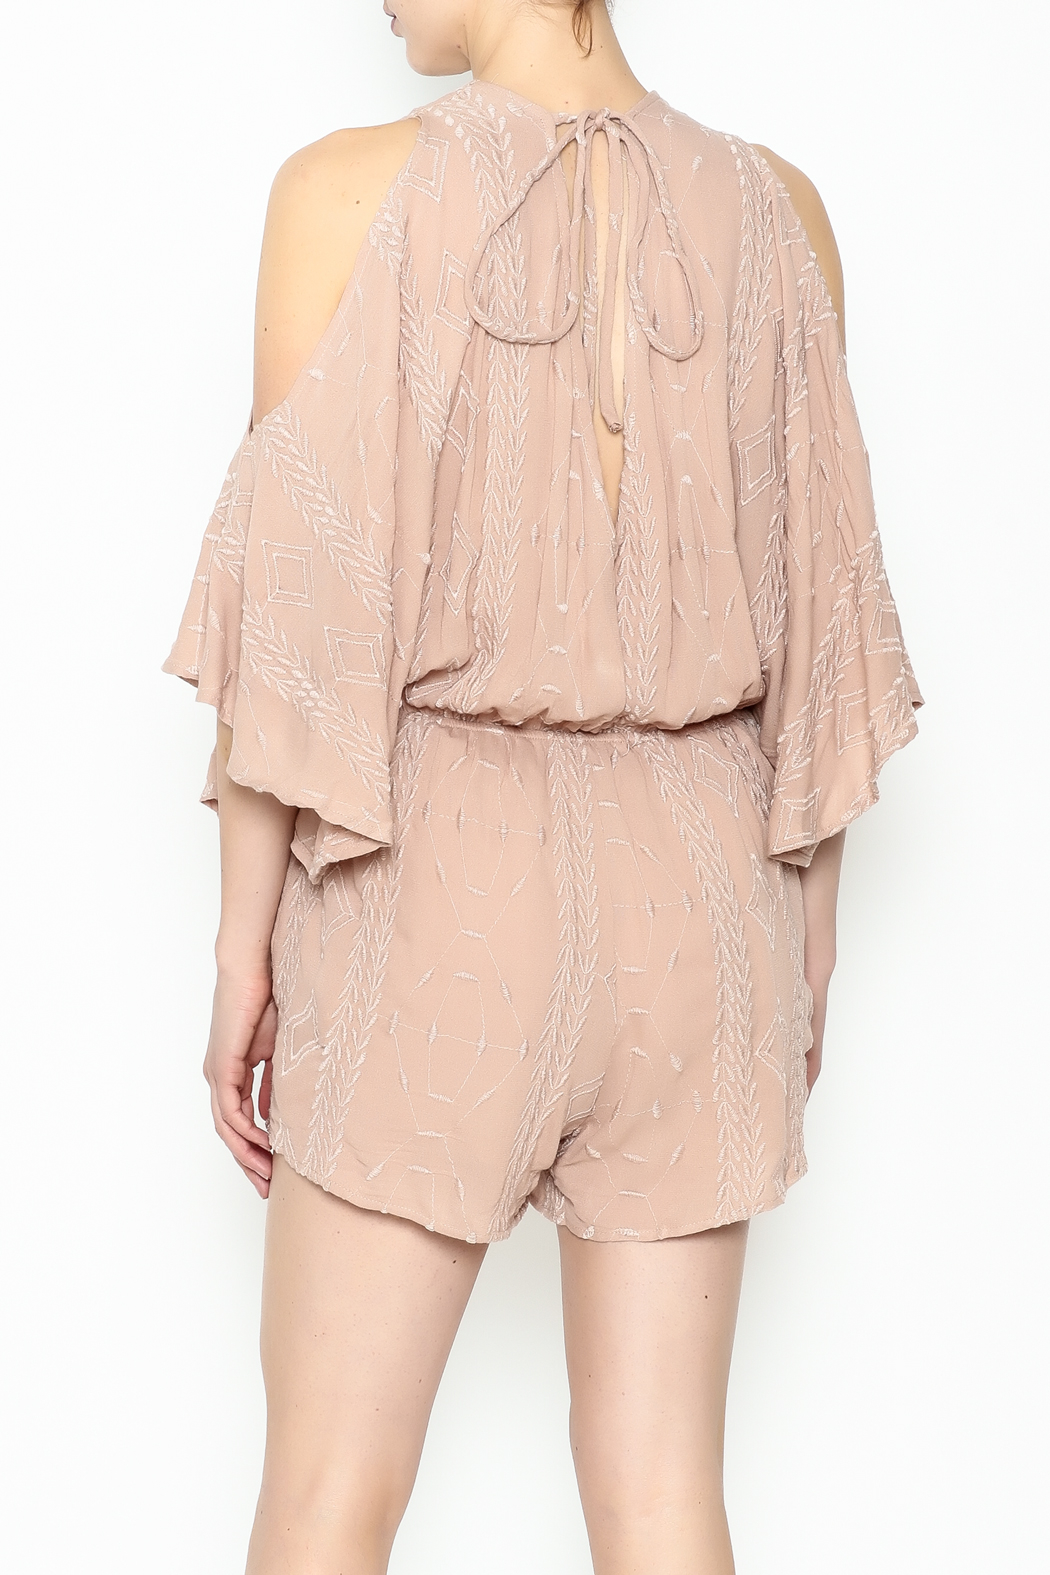 Audrey 3+1 Blush Embroidered Romper - Back Cropped Image